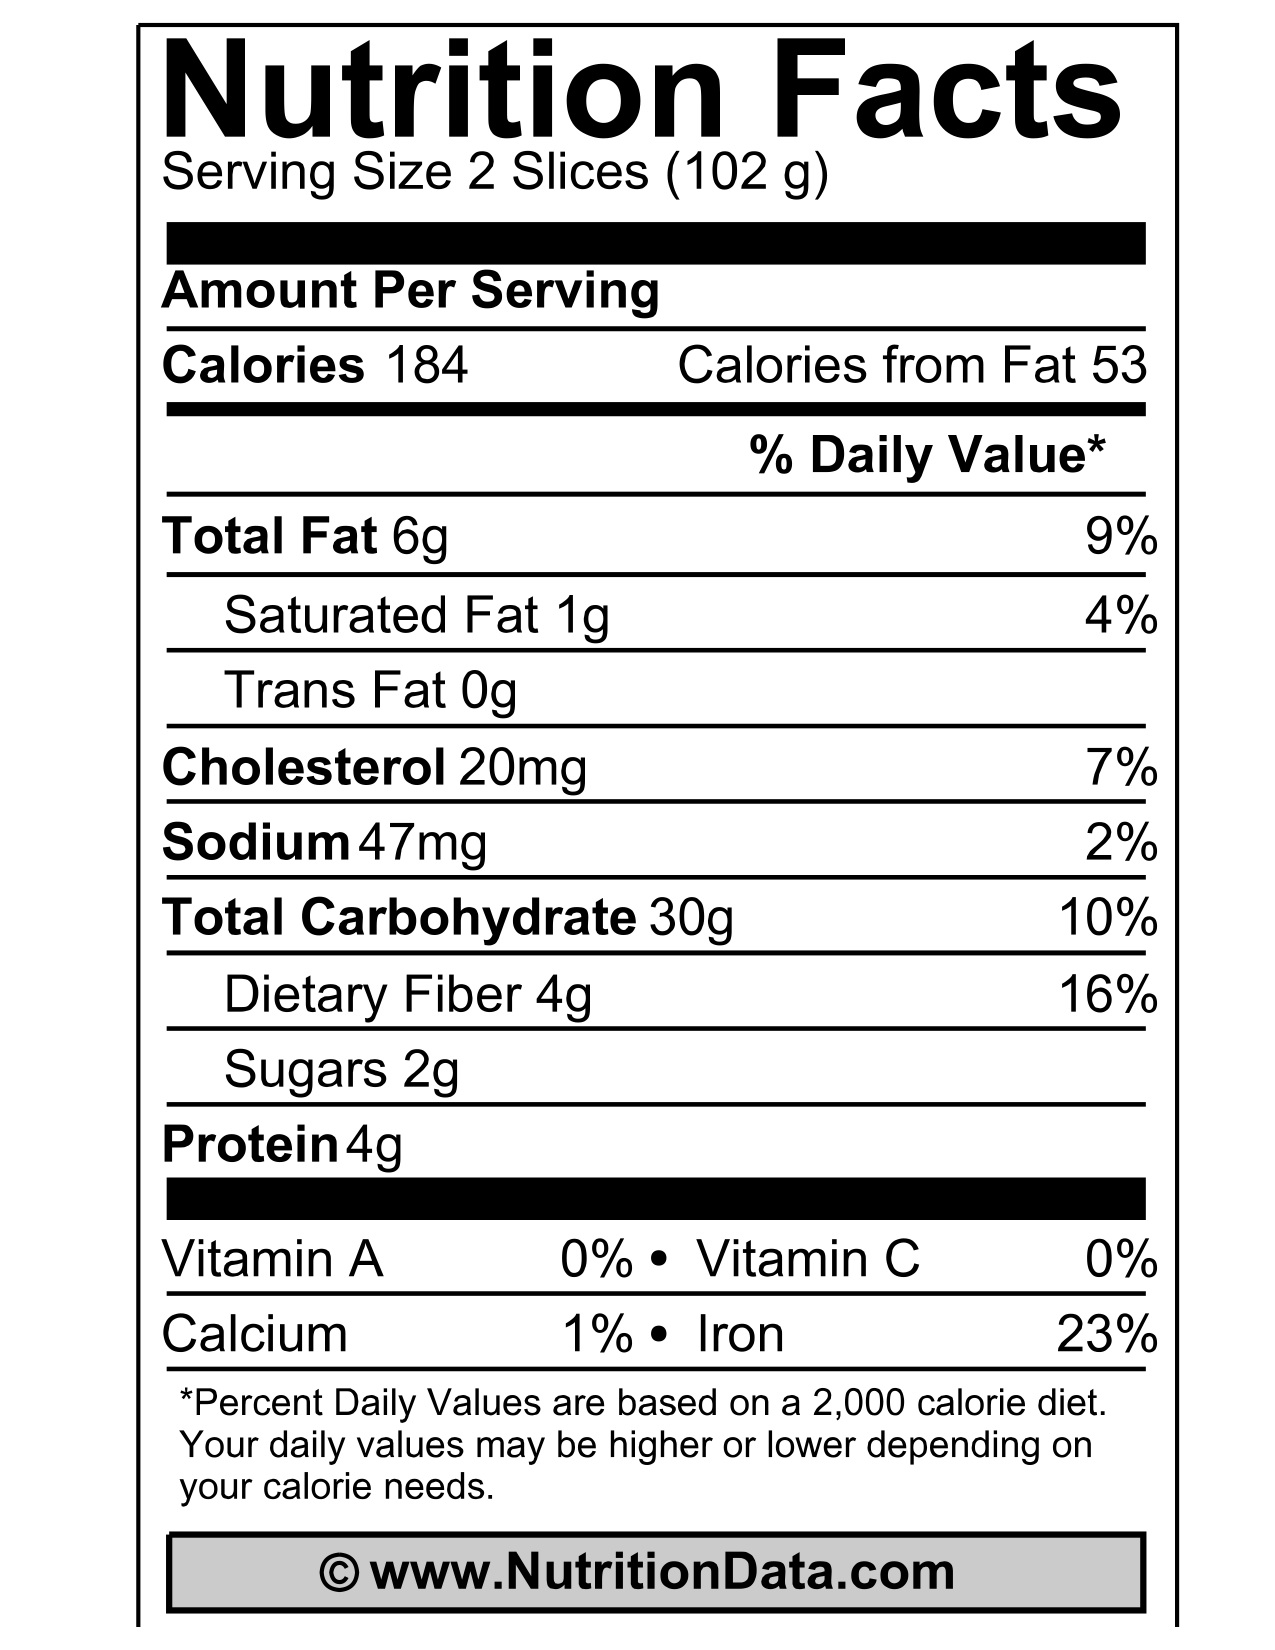 moxy-pullman-nutrition-facts.jpg